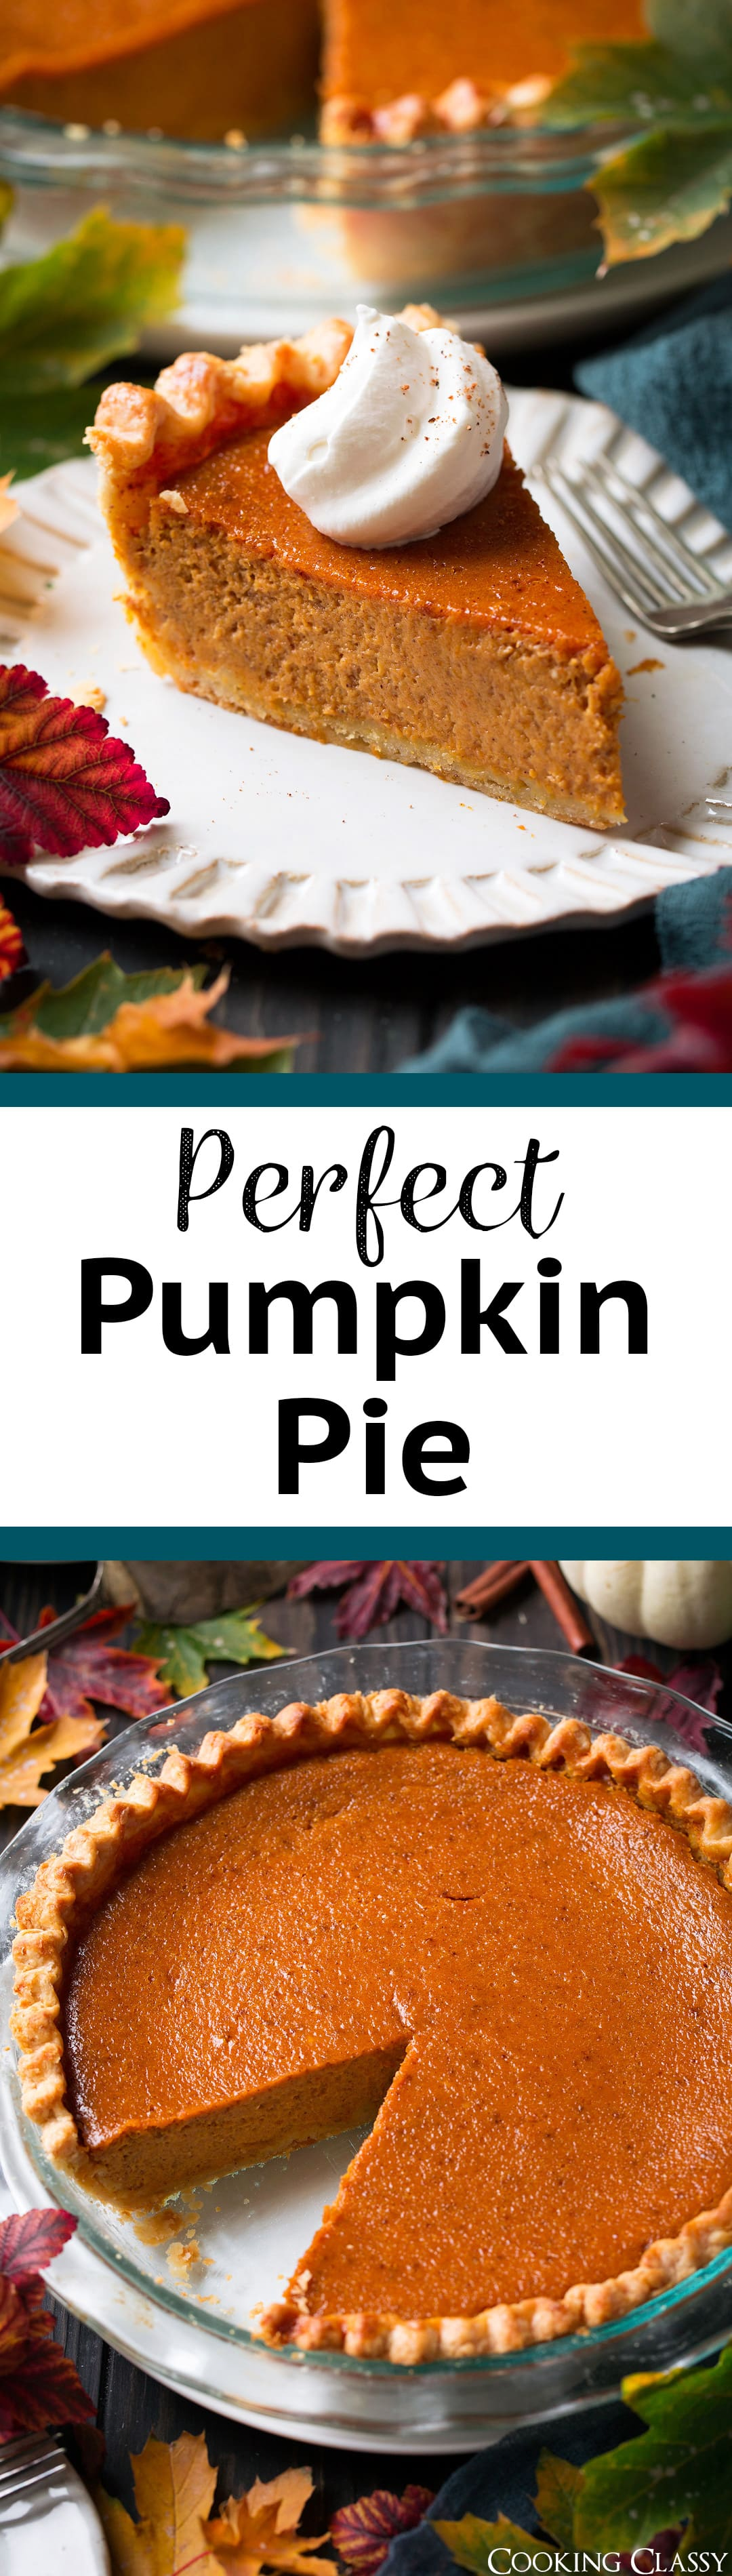 The Perfect Pumpkin Pie - this really is a perfect pumpkin pie! Make this one if you are looking to impress! Love all the little details that really make a difference. #pumpkin #pumpkinpie #pie #thanksgiving #recipe